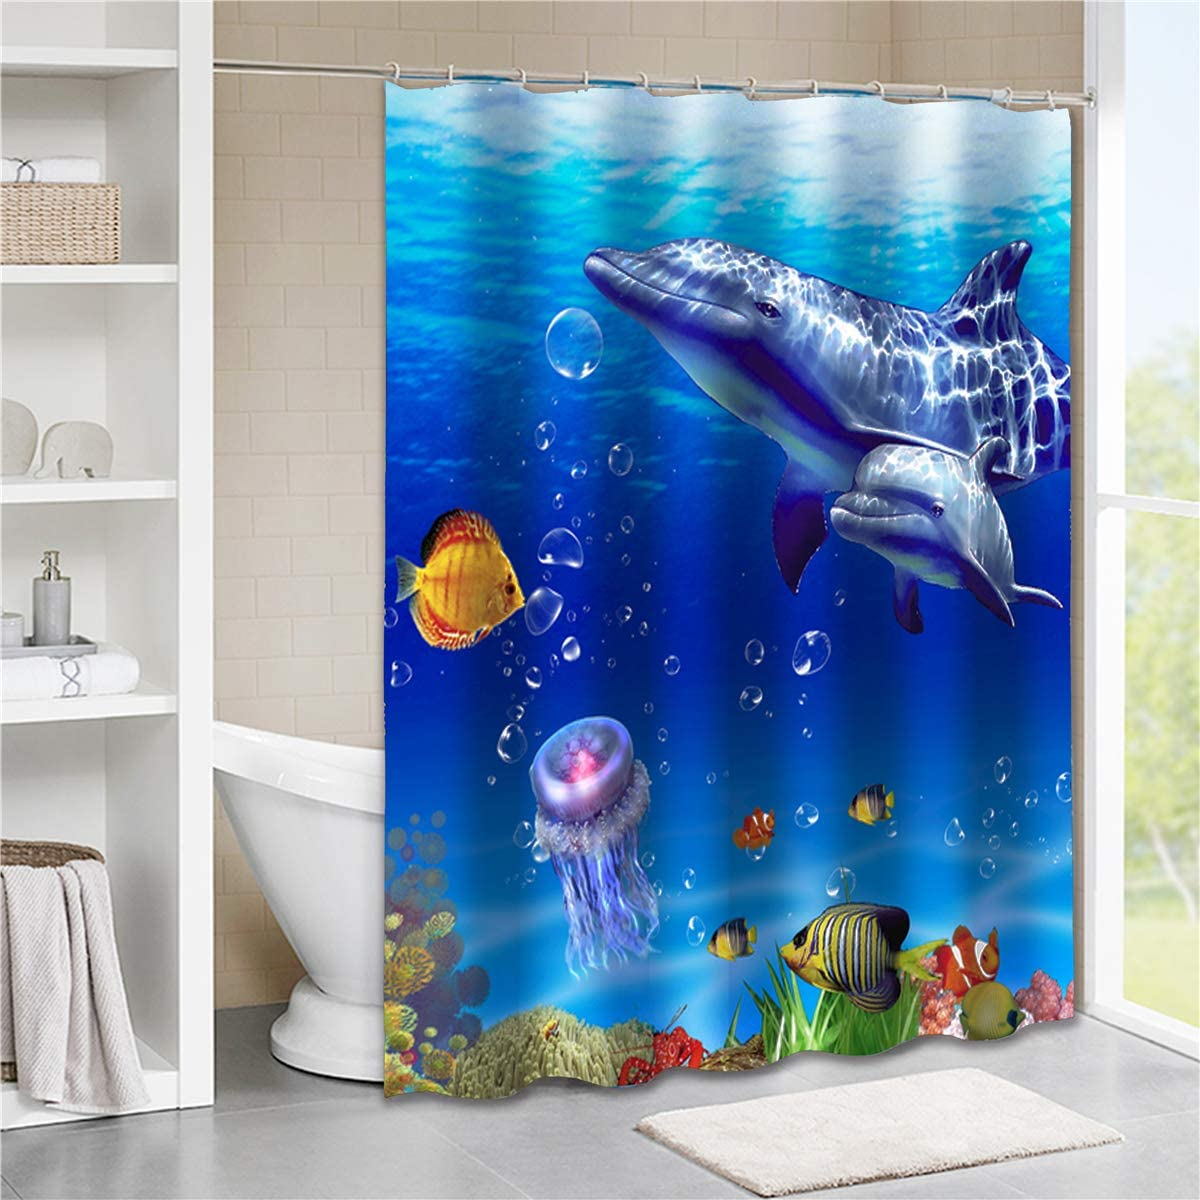 Tititex Tropical Ocean Fish Shower Curtain Sets Cute Sea Animal Dolphin Kids Waterproof Polyester Cloth Fabric 69 X70 With Hooks Home Kitchen